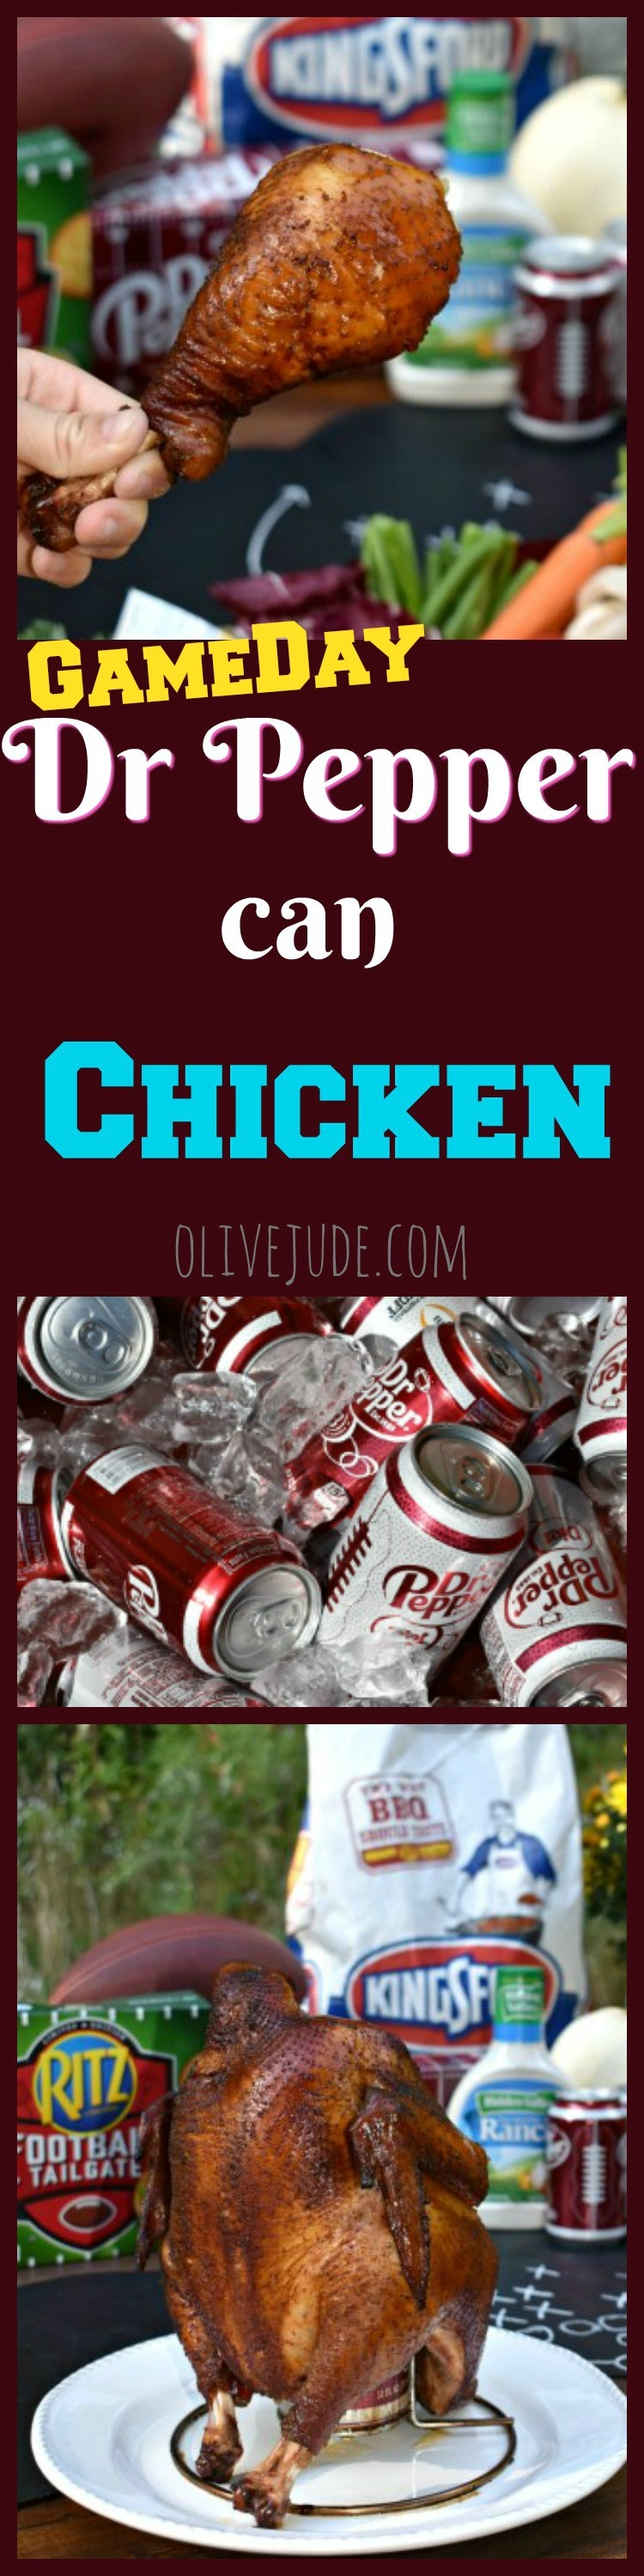 A Grill-Gate GameDay Gathering featuring Dr Pepper Can Chicken #drpepperchicken #drpepperrecipes #tailgatefood #canchicken #gamedayfood